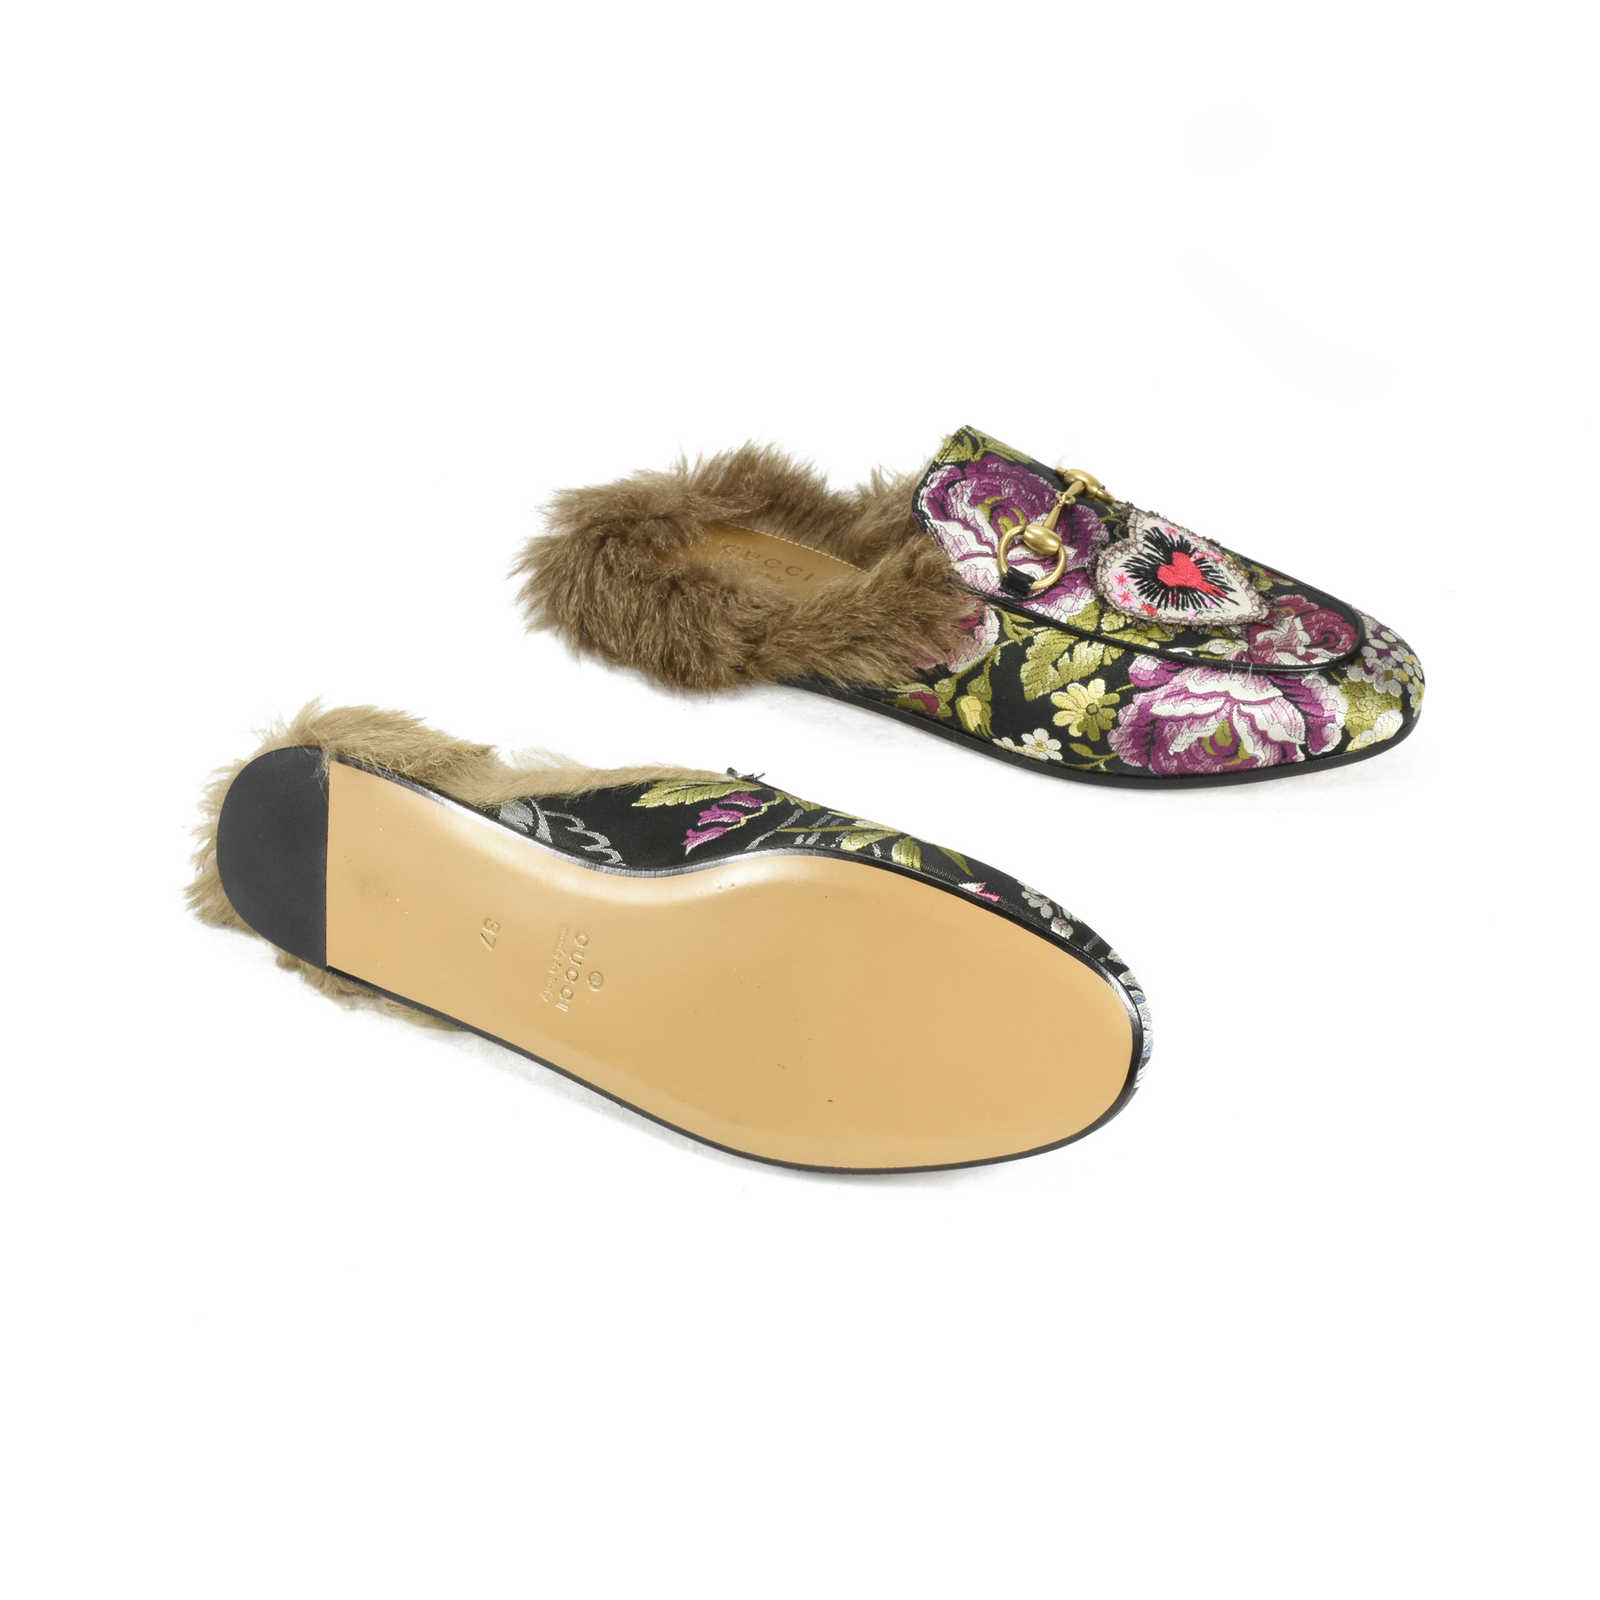 39706b31d4e ... Authentic Second Hand Gucci Princetown Floral Brocade Slipper  (PSS-200-00981) ...